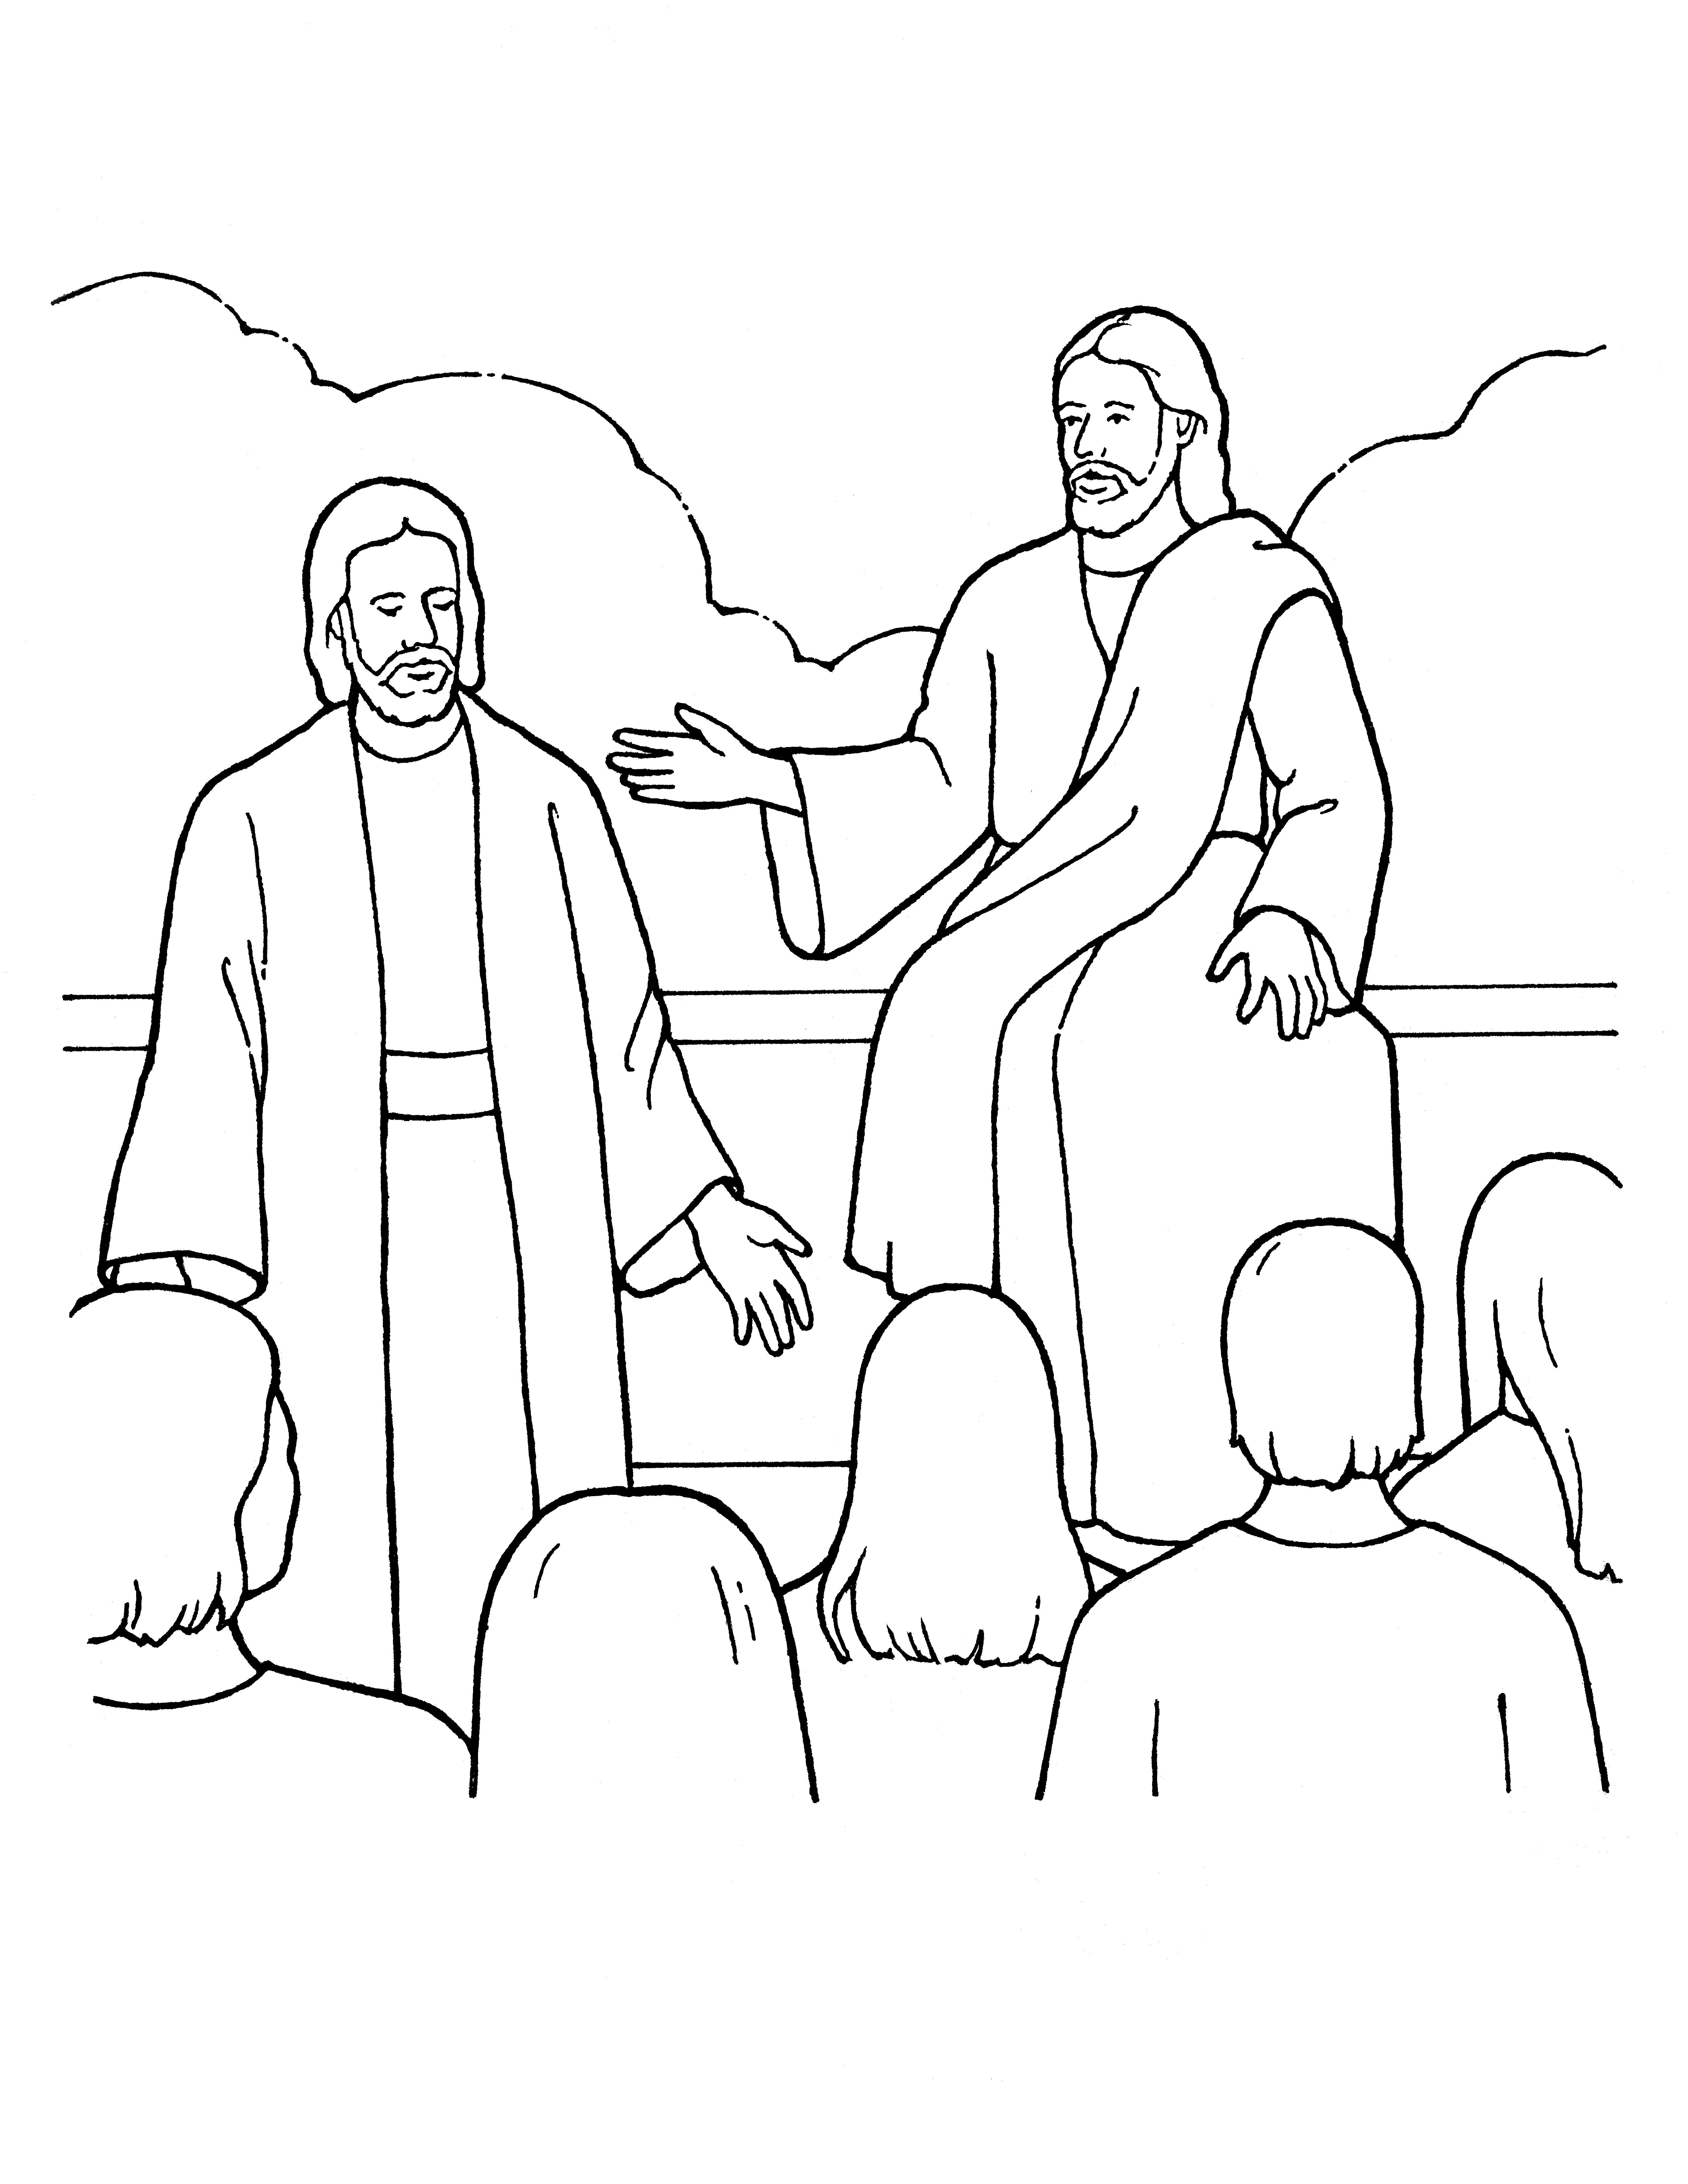 An illustration of Heavenly Father and Jesus Christ presenting the plan in the premortal life, from the nursery manual Behold Your Little Ones (2008), page 15.